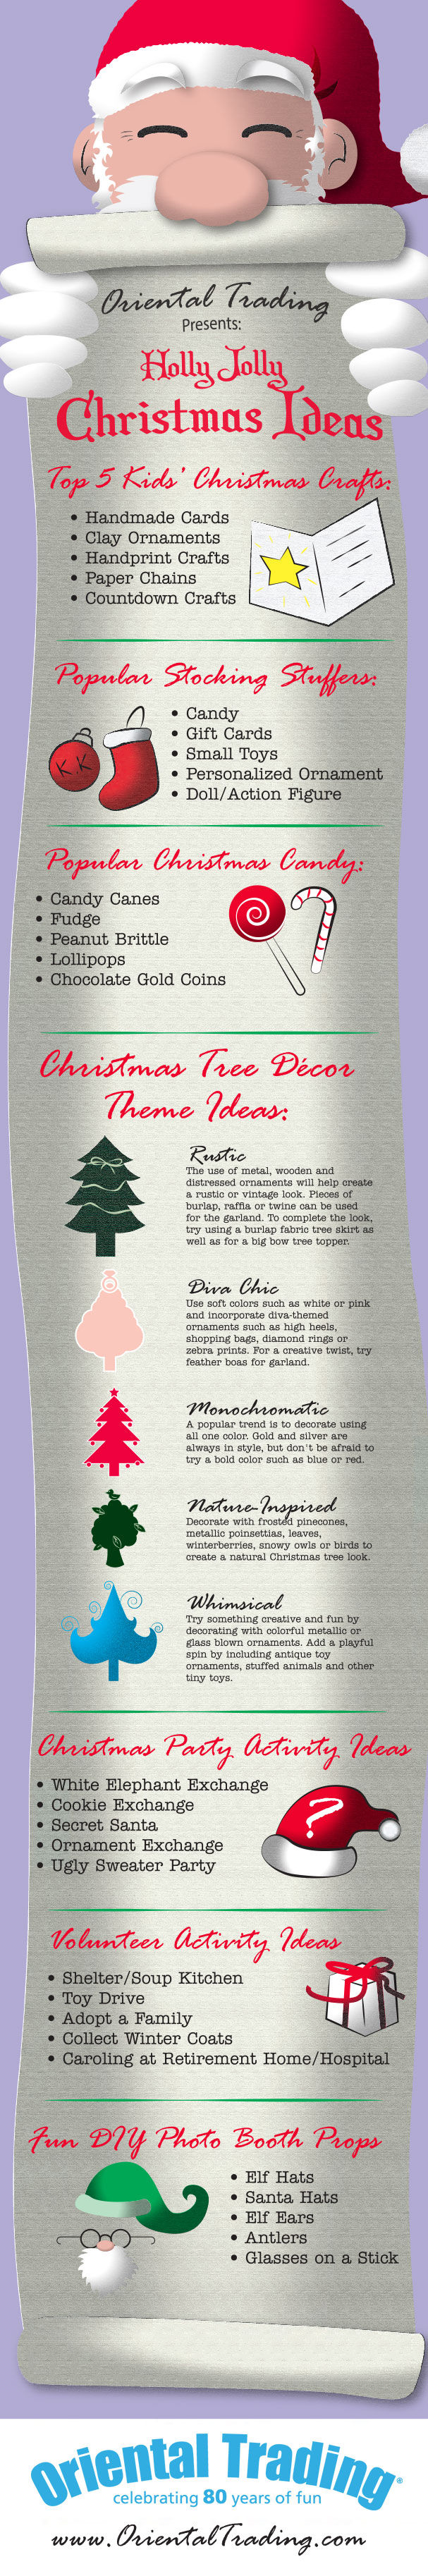 christmas-ideas-infographic